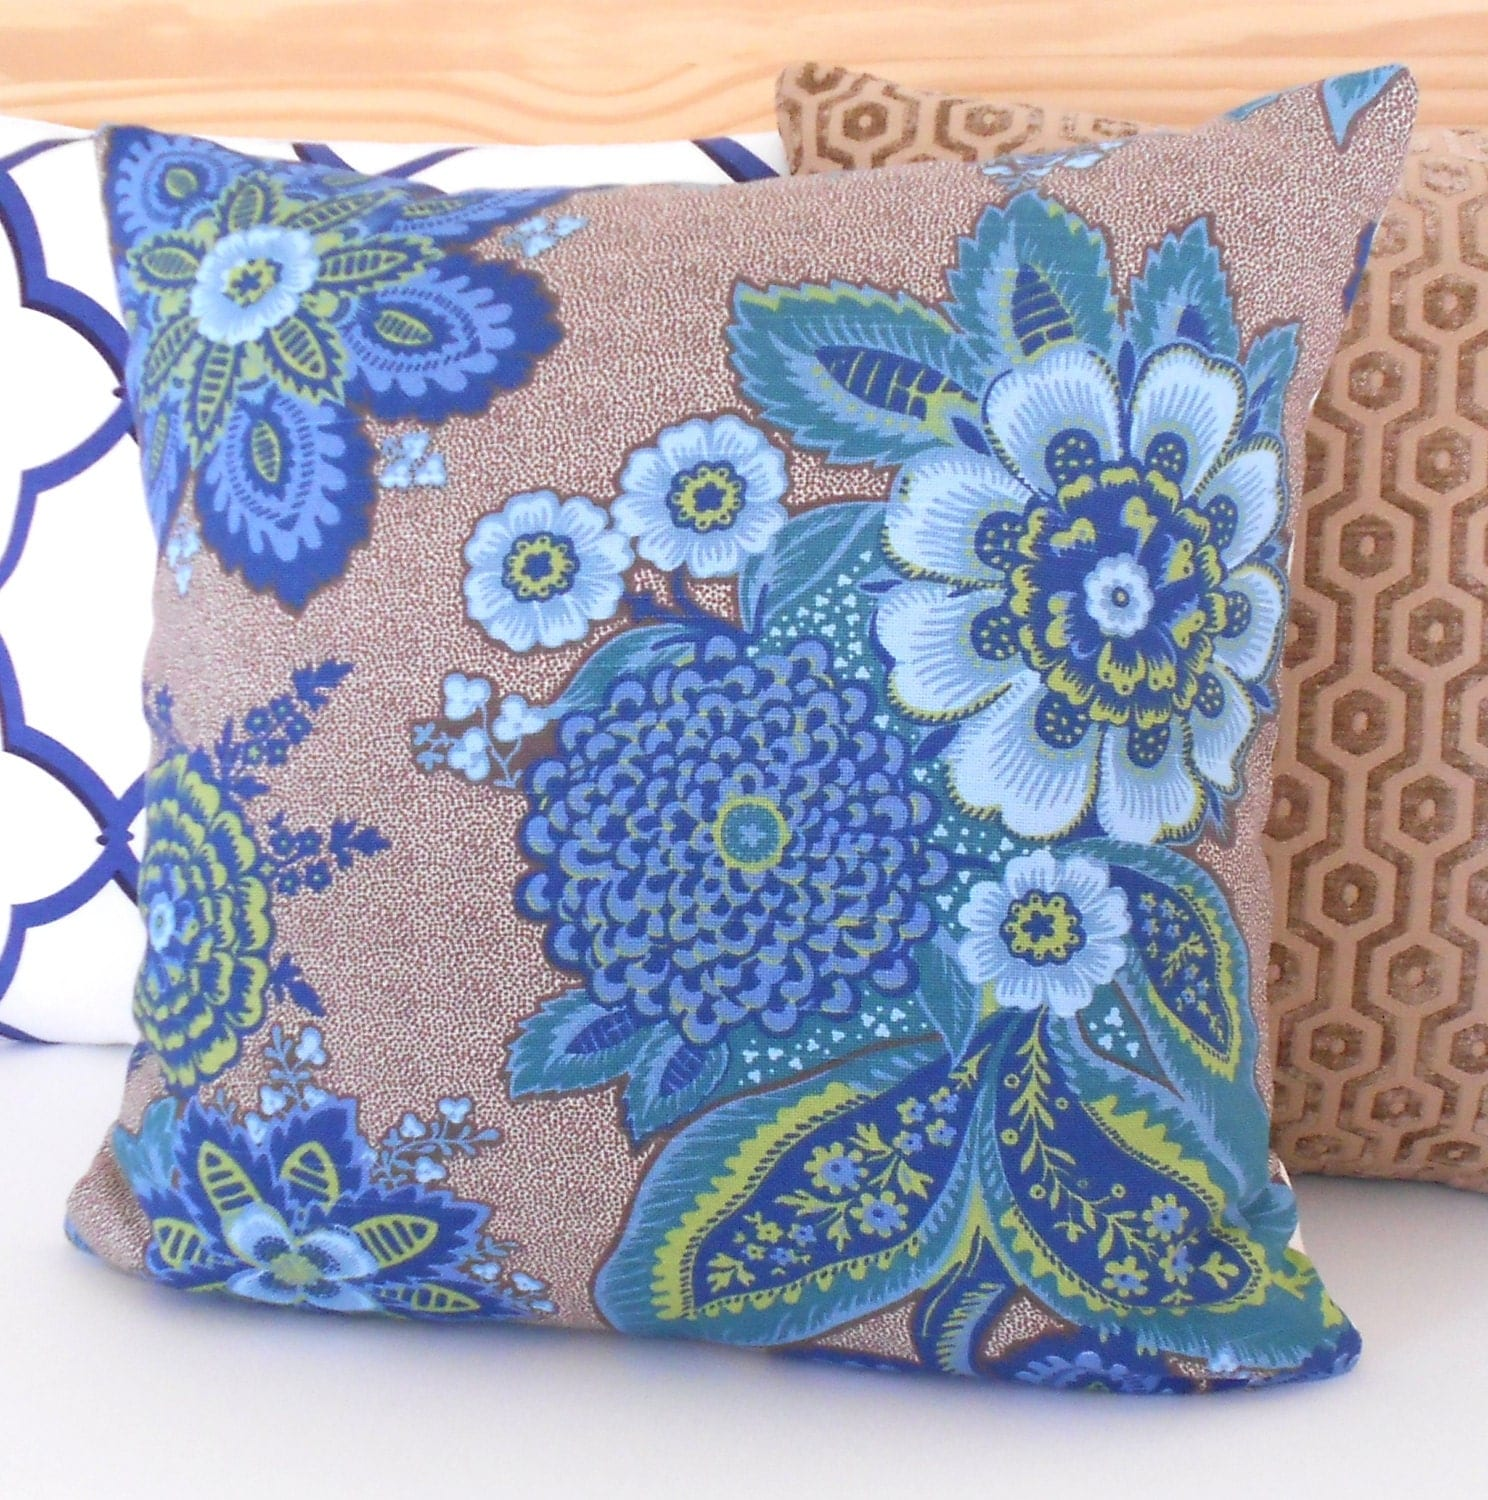 Blue Green And Brown Throw Pillows : Blue green and brown floral decorative pillow by pillowflightpdx